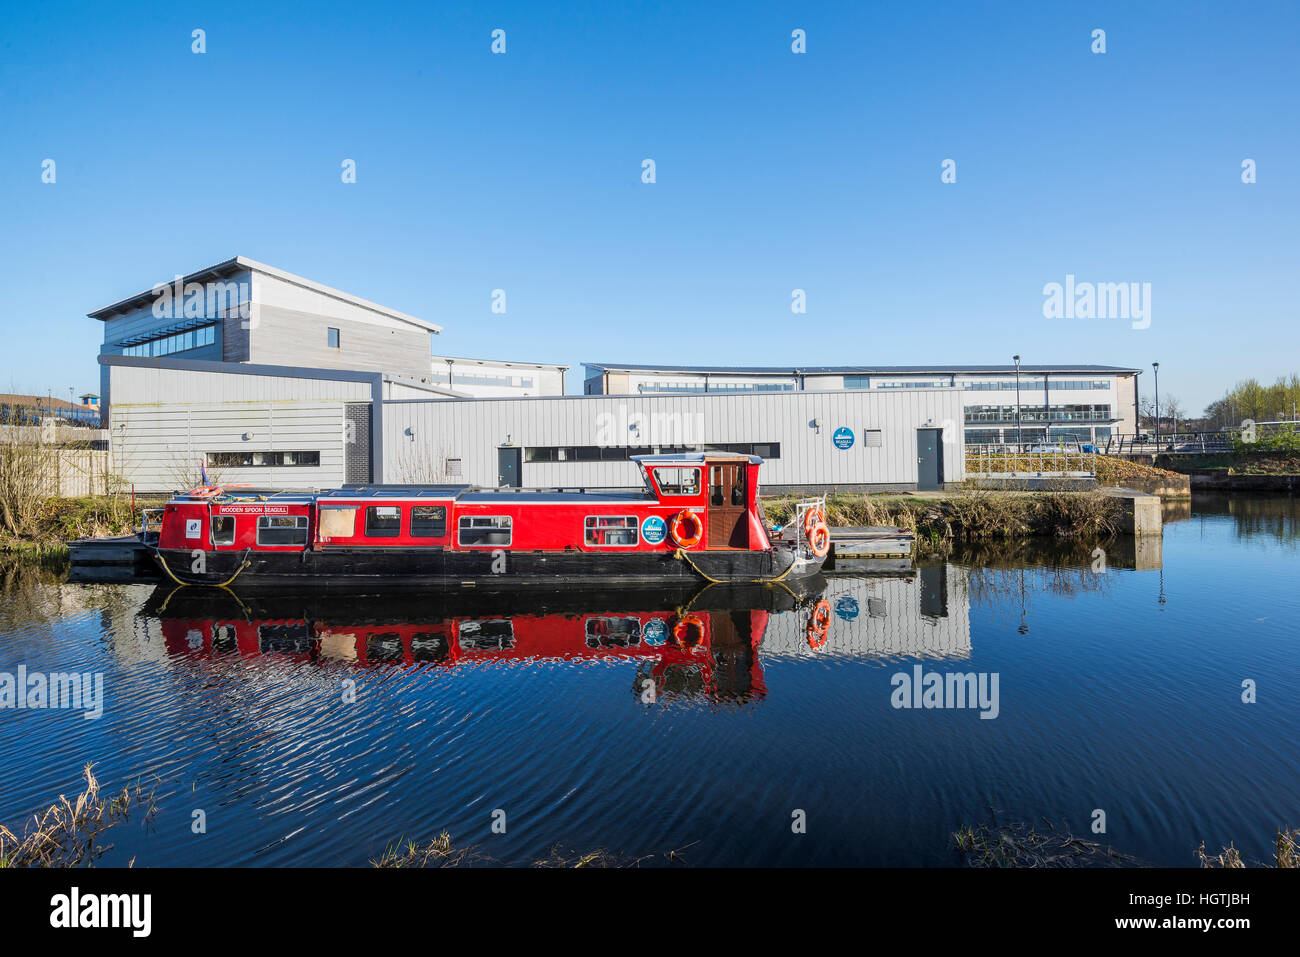 Longboat barge on Forth & Clyde canal at Kirkintilloch Marina - Stock Image